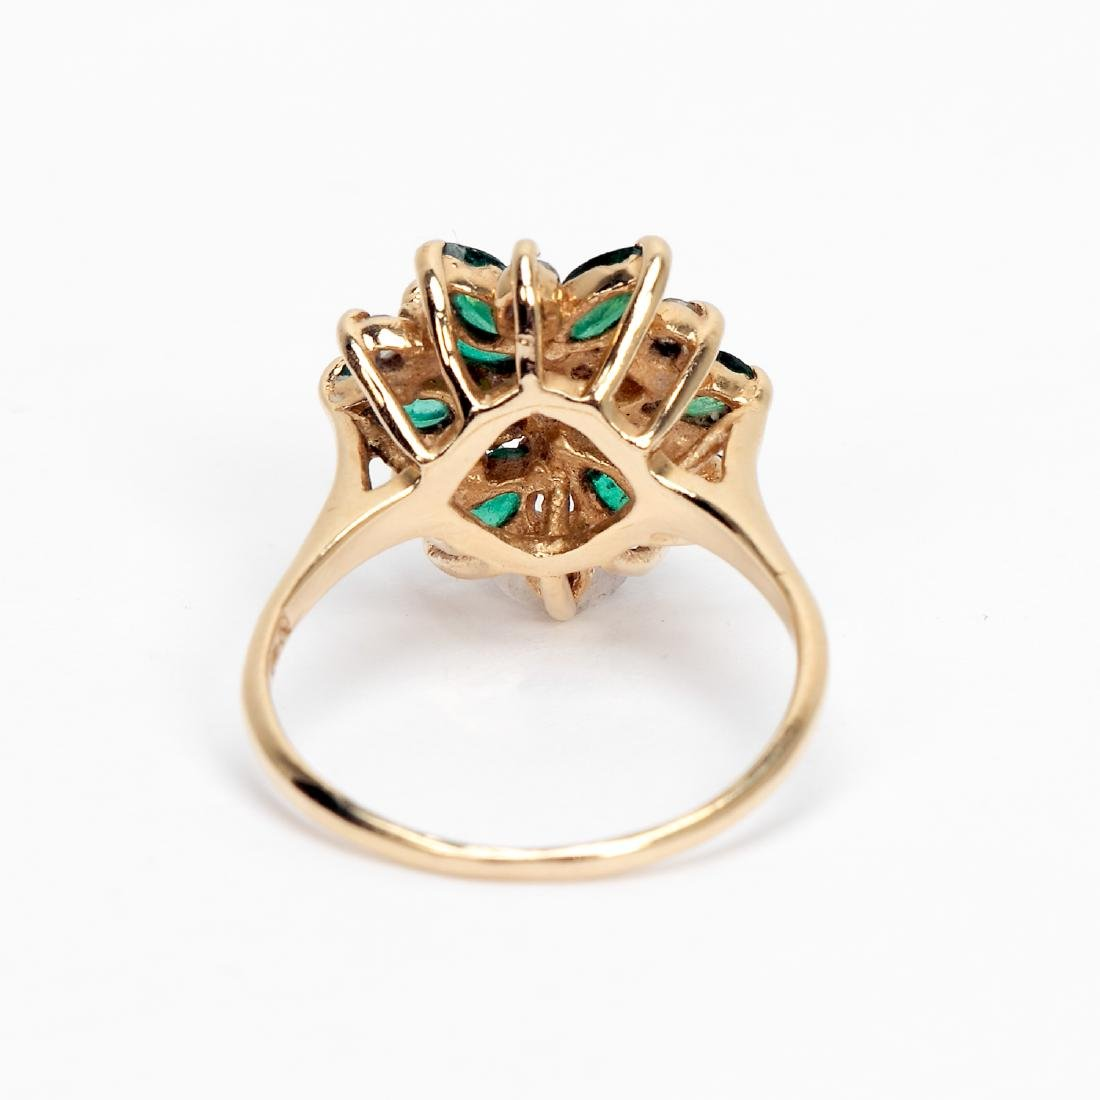 14k Gold, Emerald, & Diamond Cluster Ring - 3